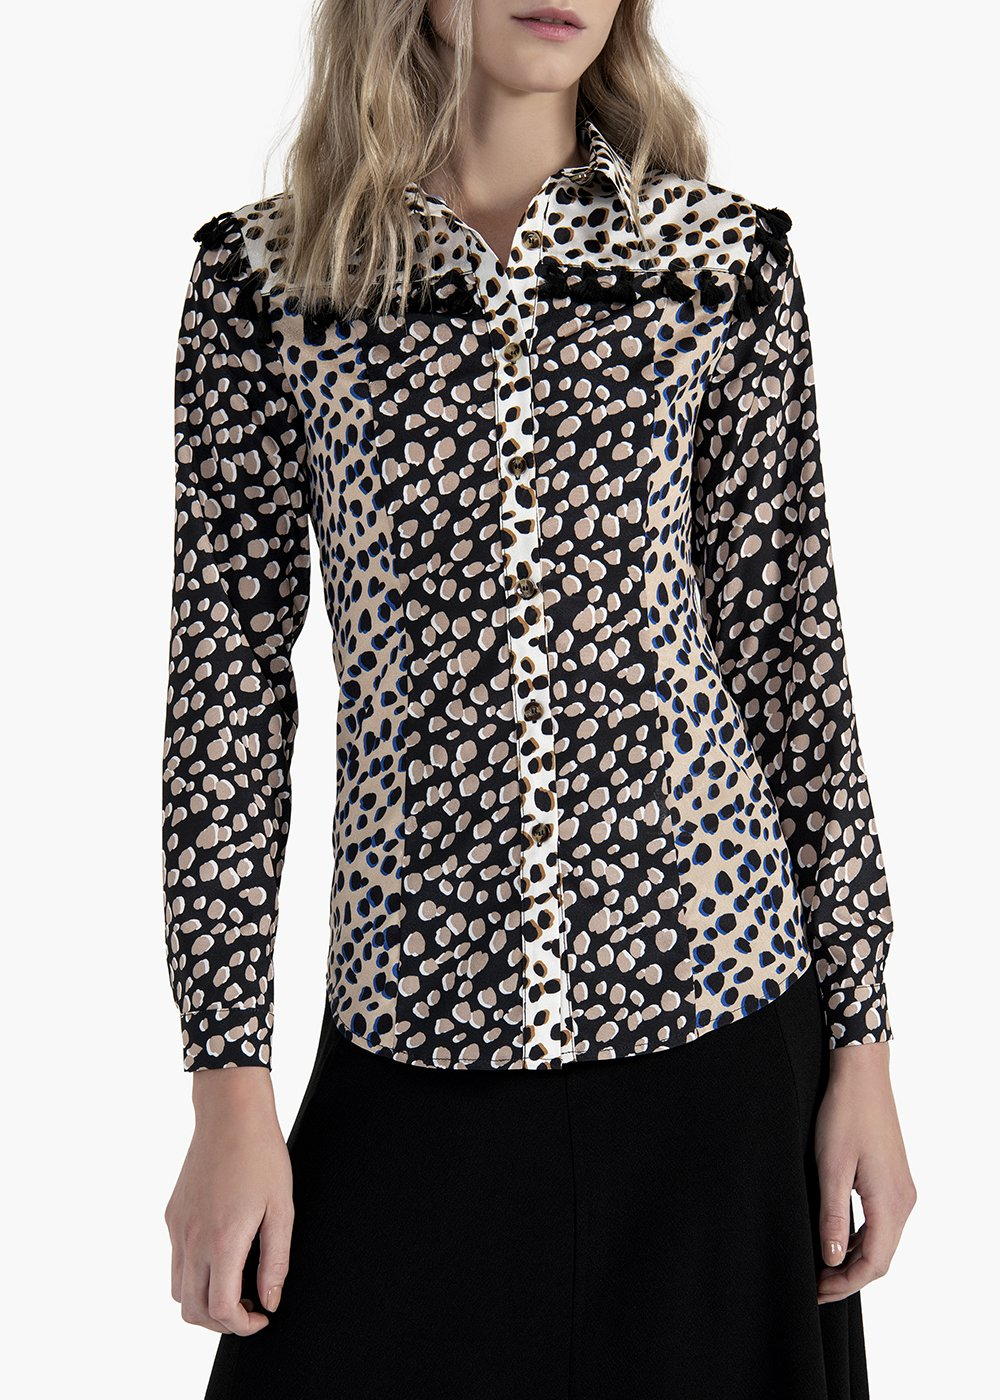 Spotted printed Calor blouse with cotton tassels - Light Beige\  Black\ Animalier - Woman